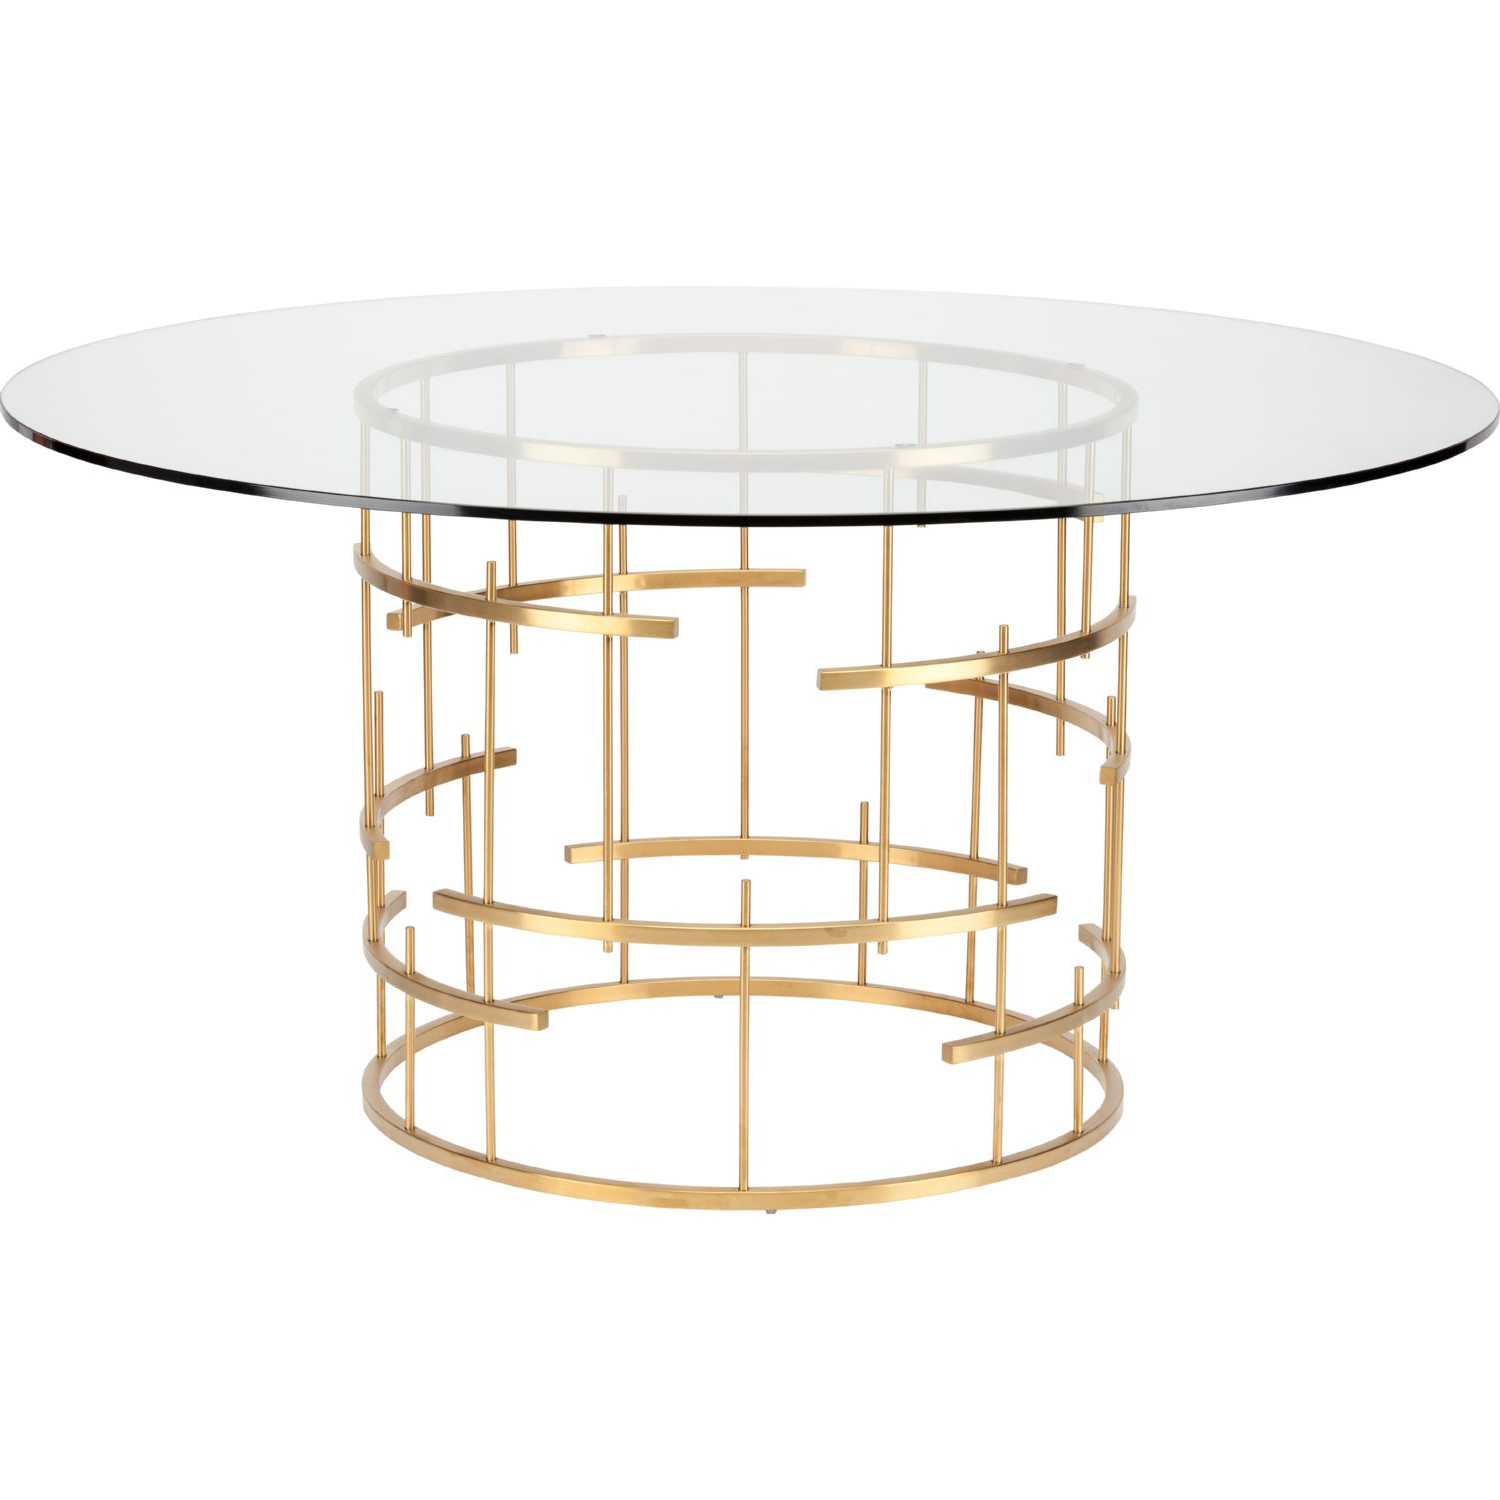 Modern Gold Dining Tables With Clear Glass Intended For Preferred Round Dining Table With Metal Base Image Collections – Round (Gallery 29 of 30)